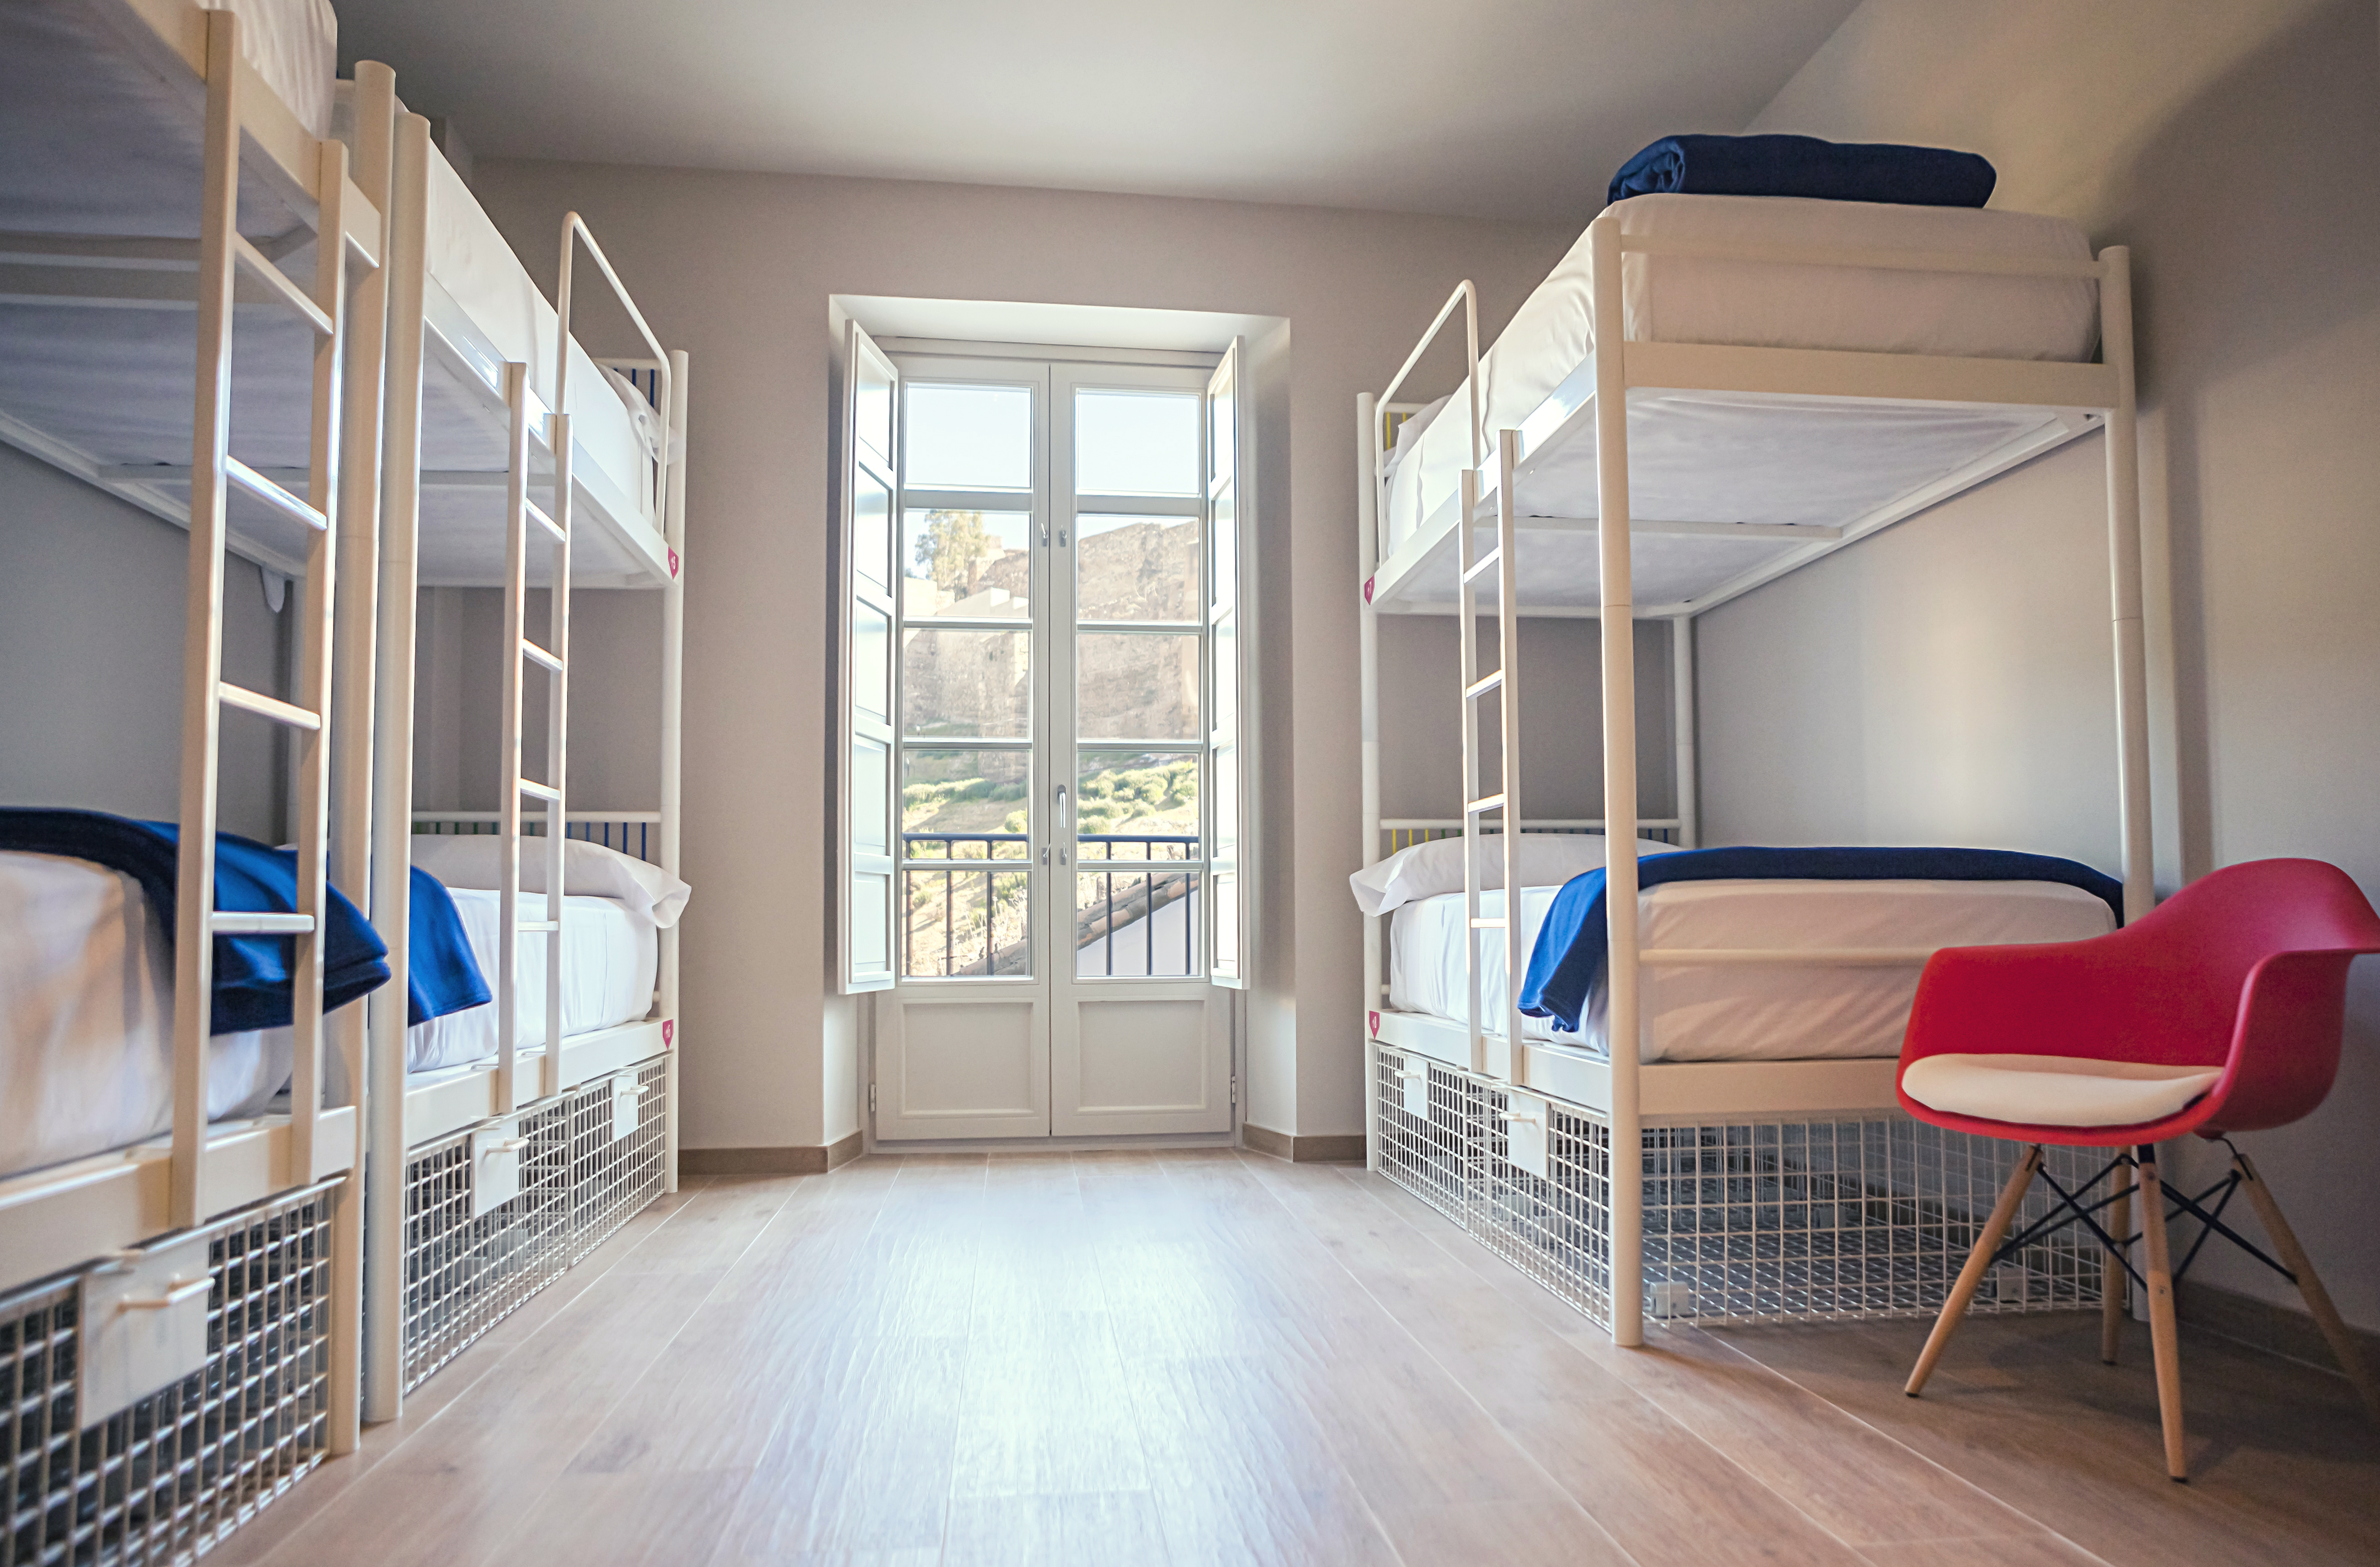 Rooms for groups in Malaga dowtown